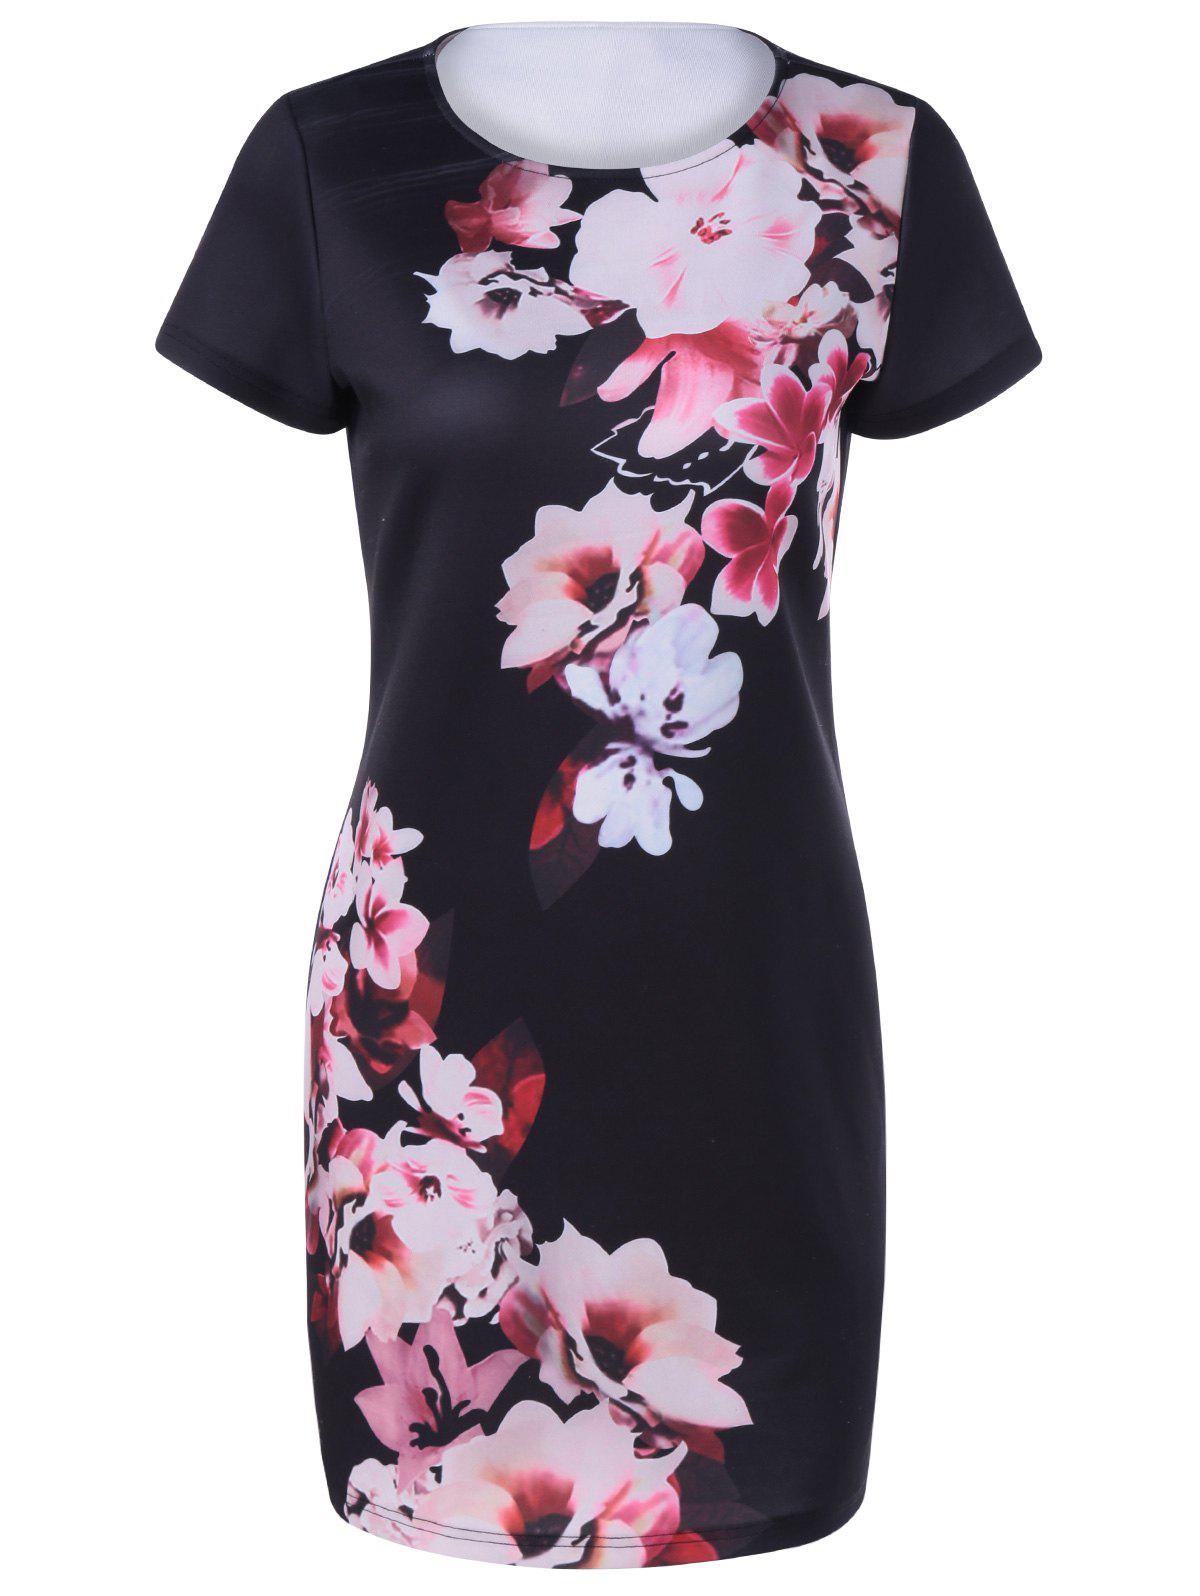 Fashionable Womens Round Collar Short Sleeves Printing DressWomen<br><br><br>Size: S<br>Color: BLACK